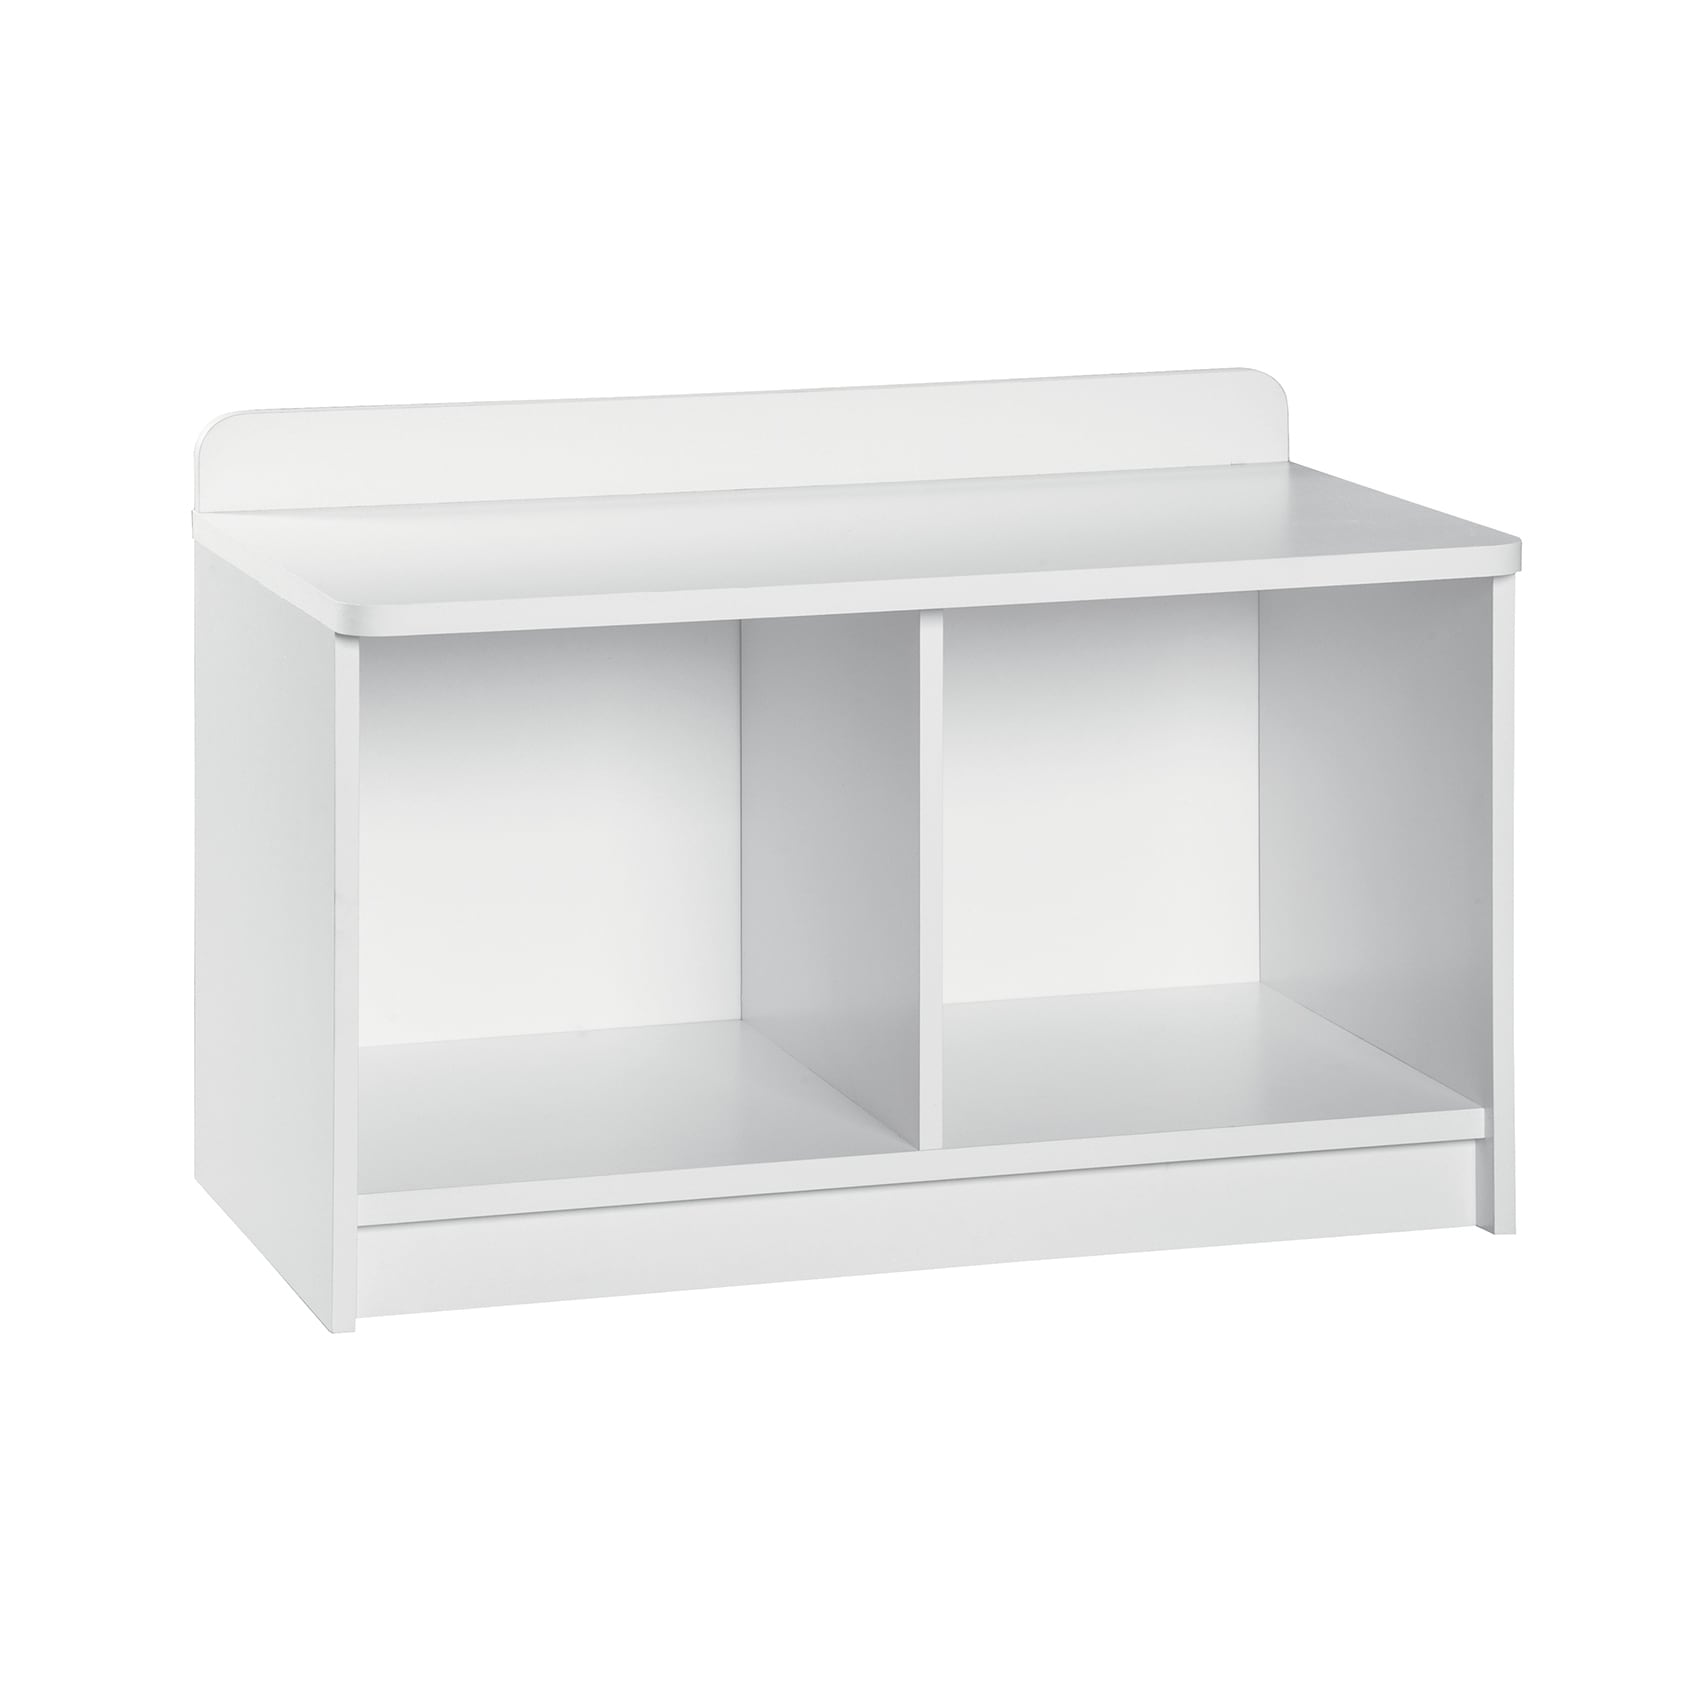 Awesome ClosetMaid Kidspace White Small Storage Bench   Free Shipping On Orders  Over $45   Overstock   21583817